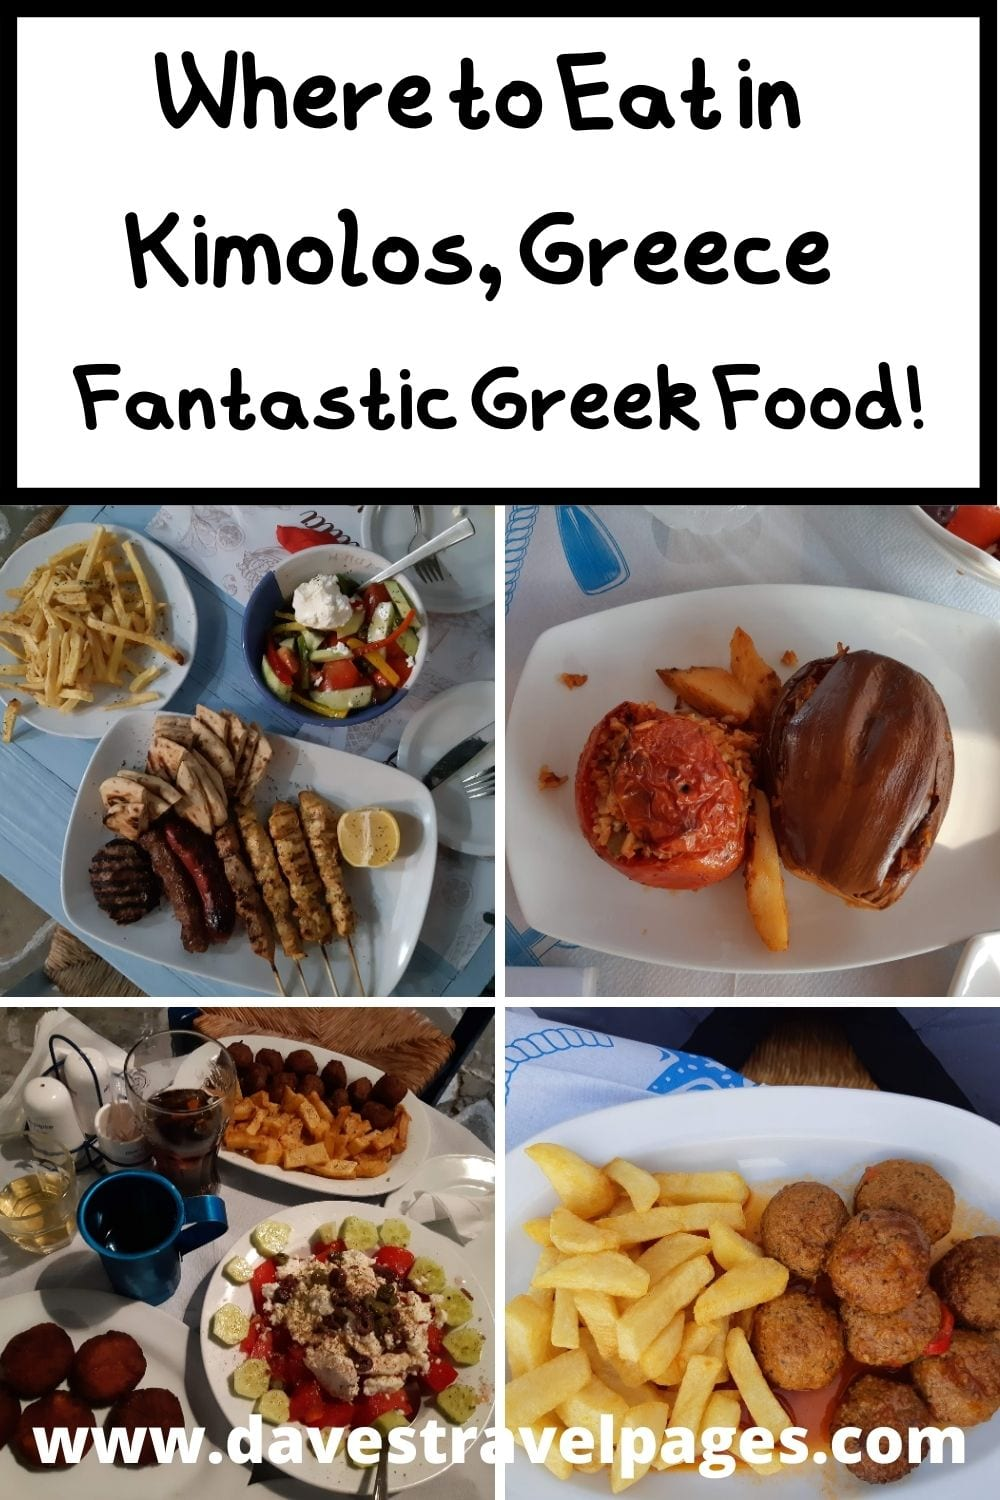 What and where to eat in the Greek island of Kimolos